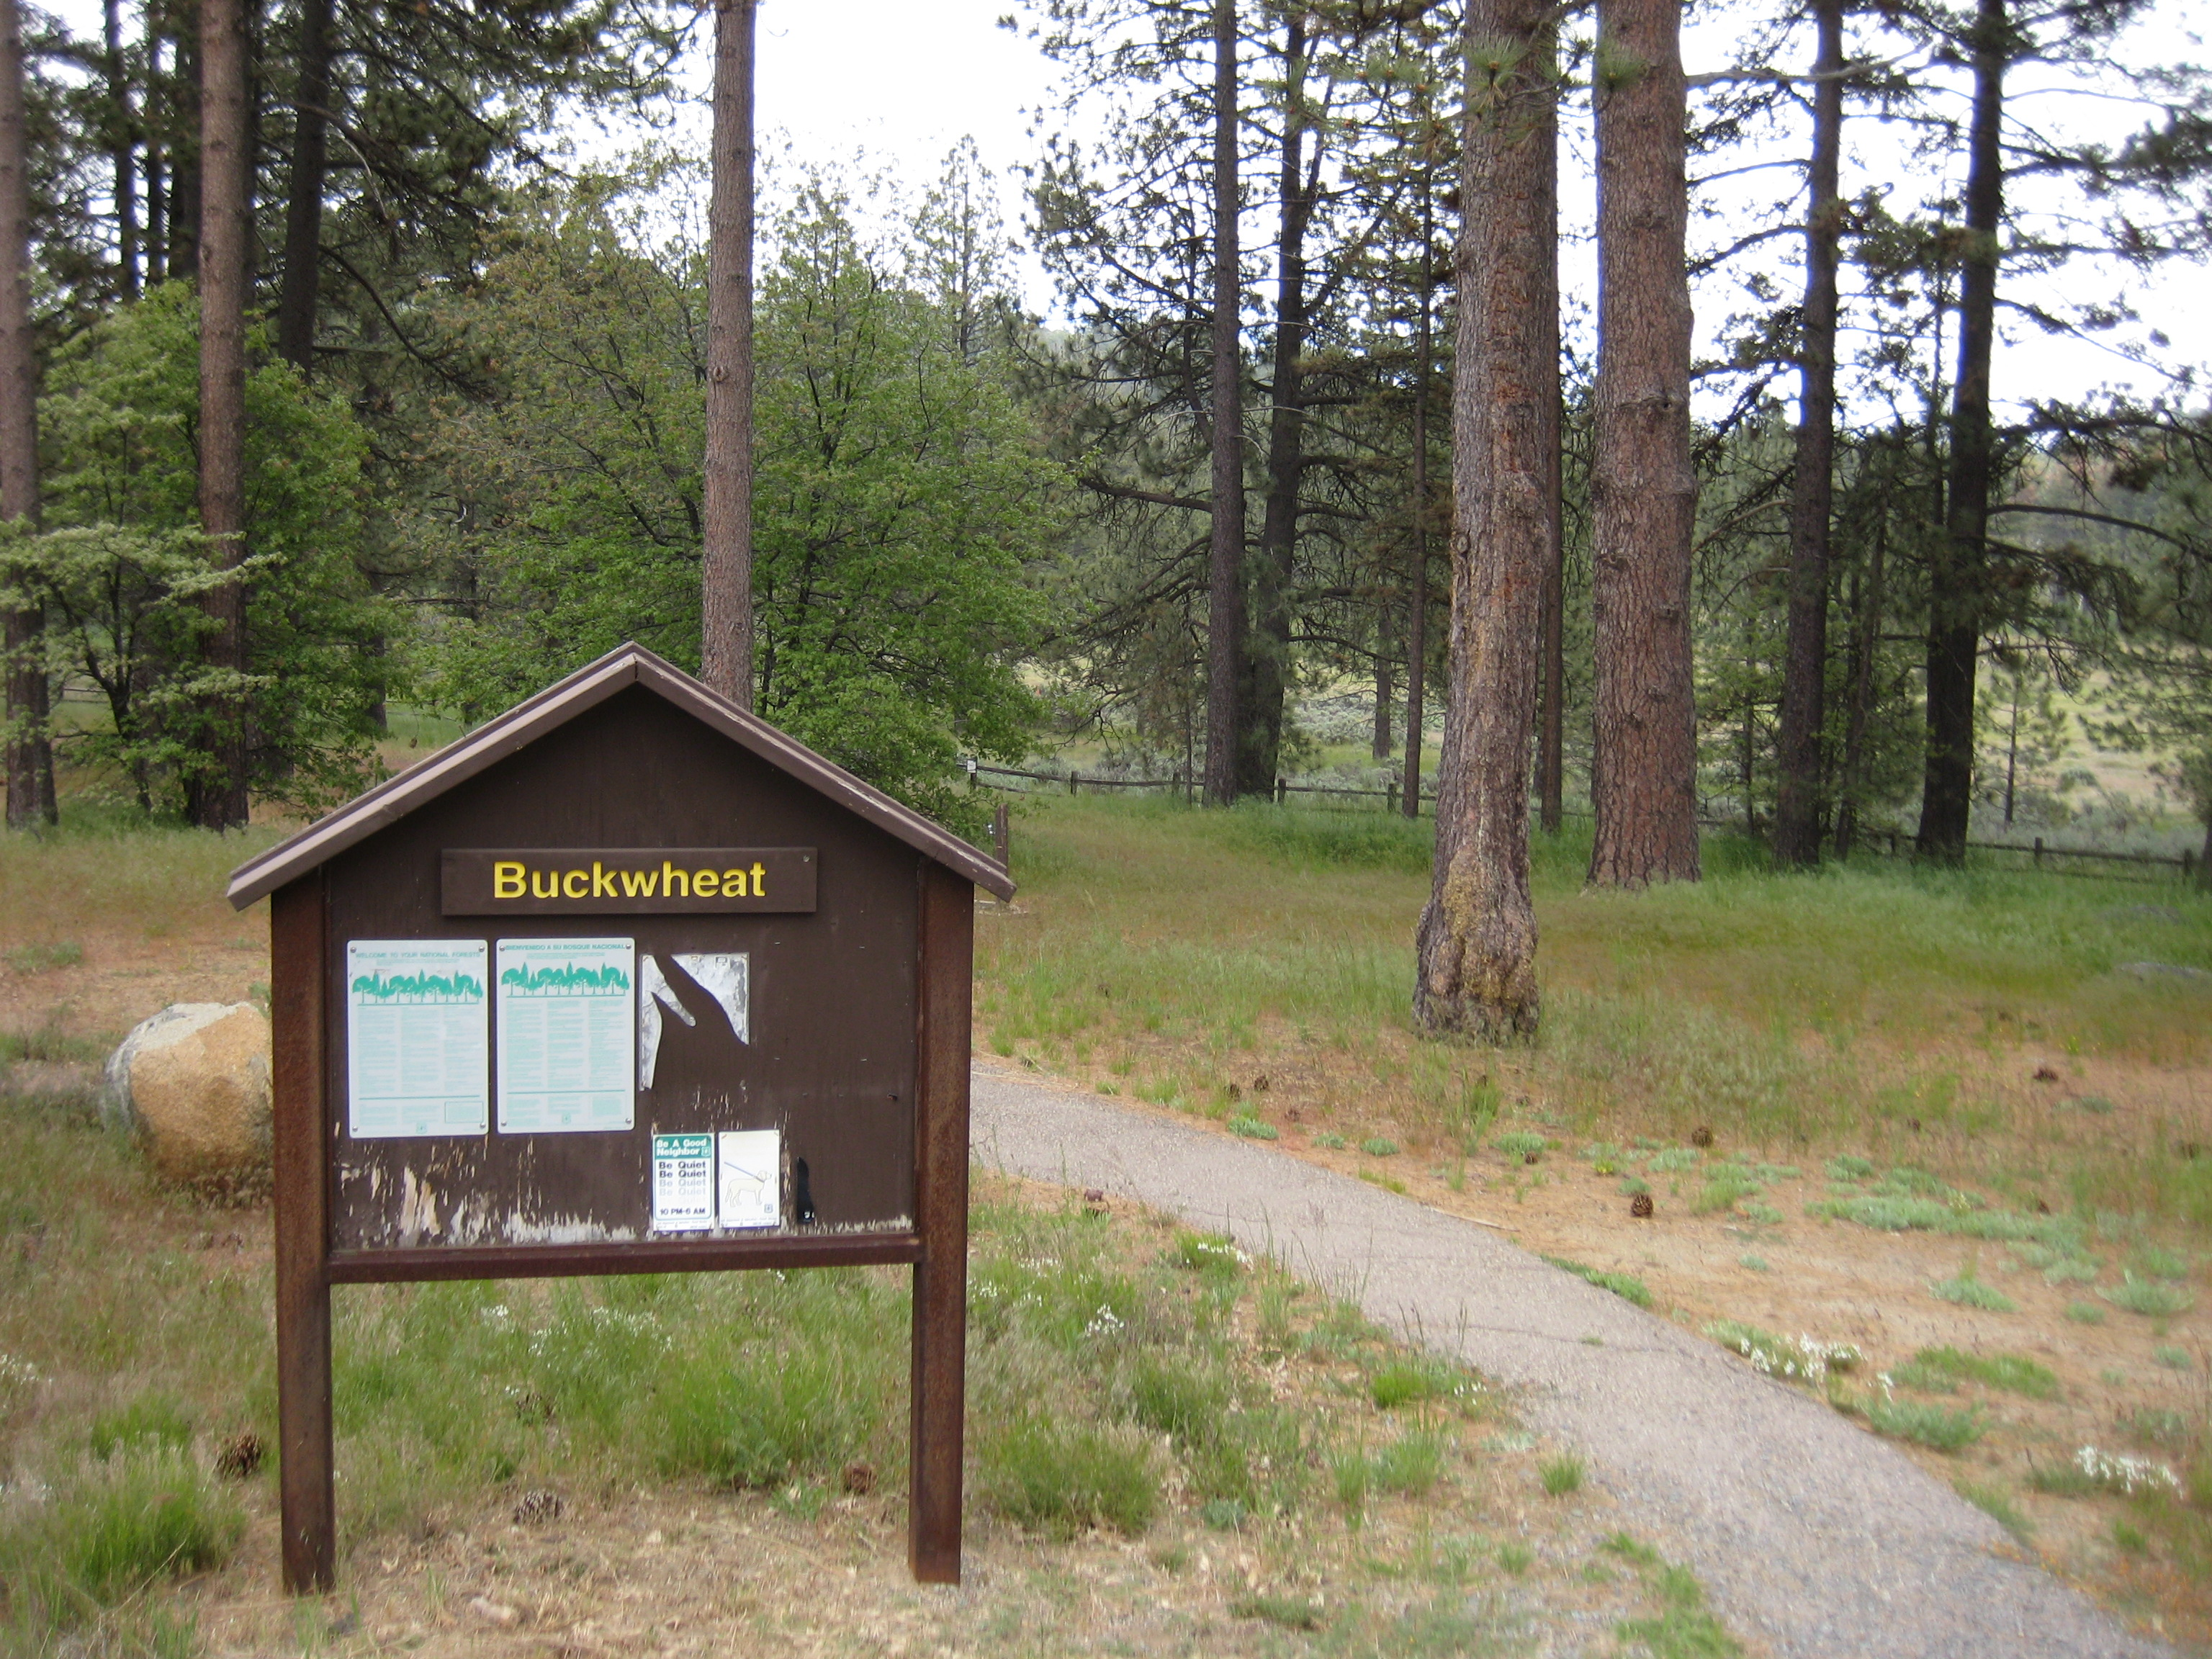 Cleveland National Forest - El Prado Group Campground - Buckwheat